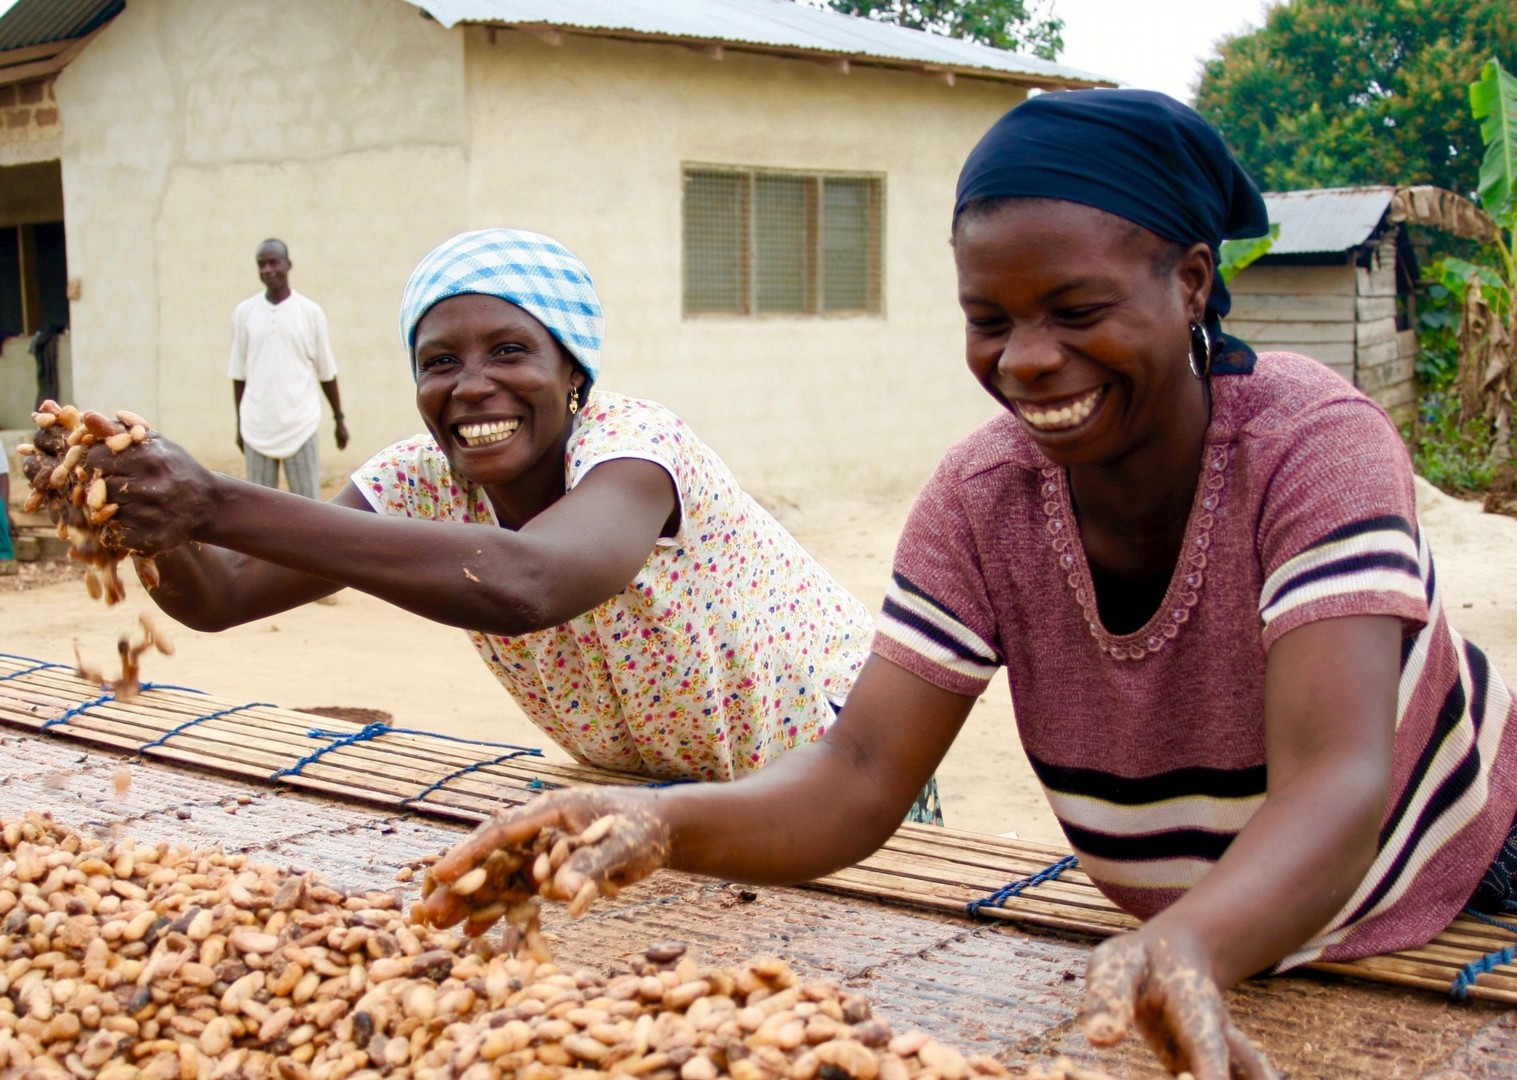 Ghana drying cocoa.jpg - Ghana - Meet the People Tours